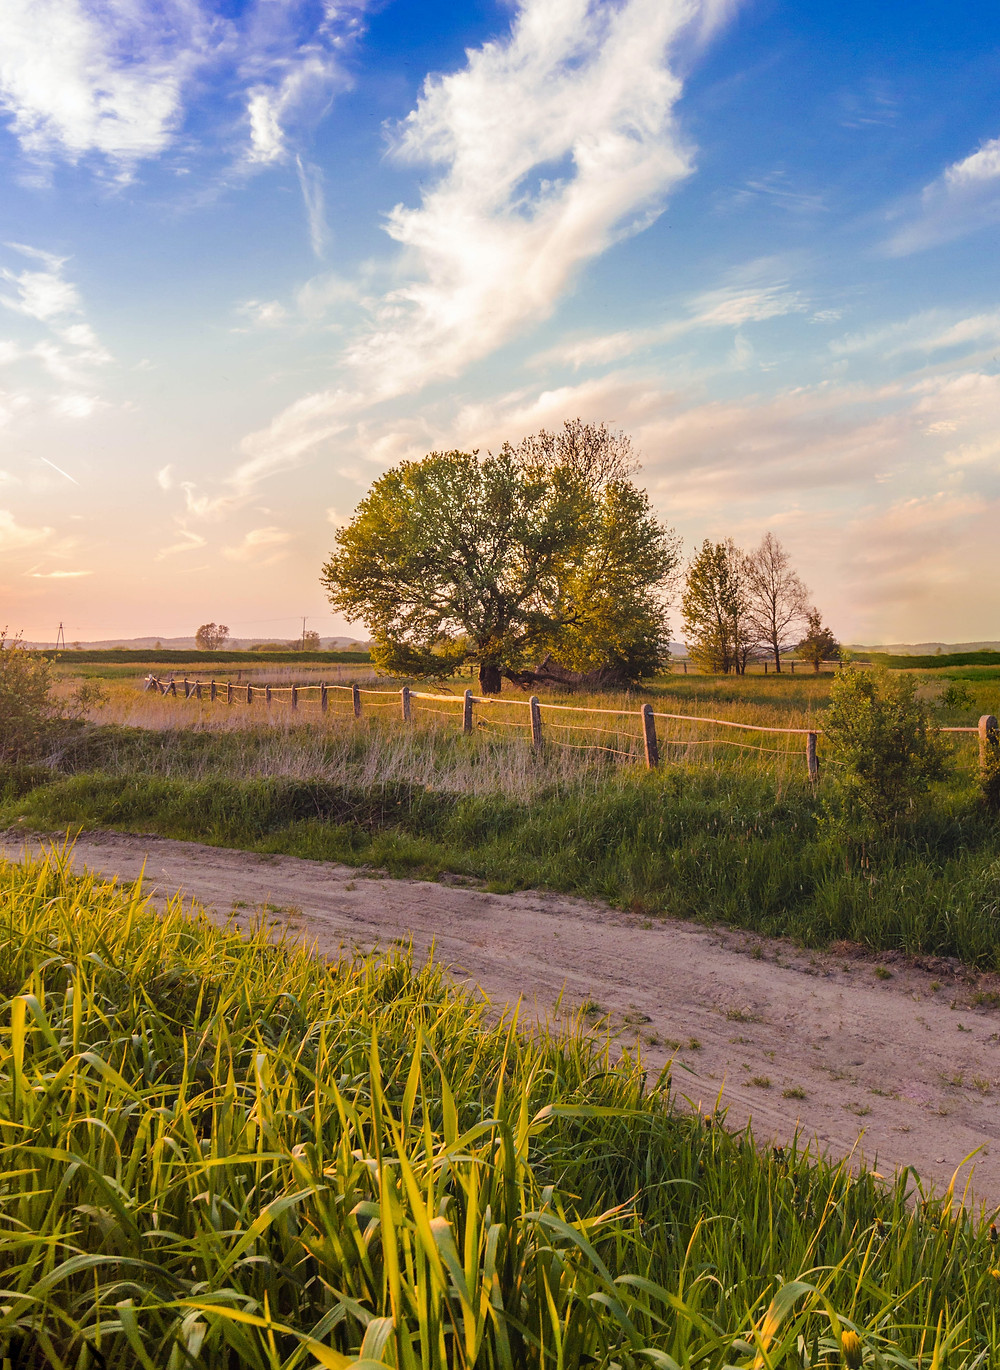 A dirt road in the middle of a sunny field with trees.